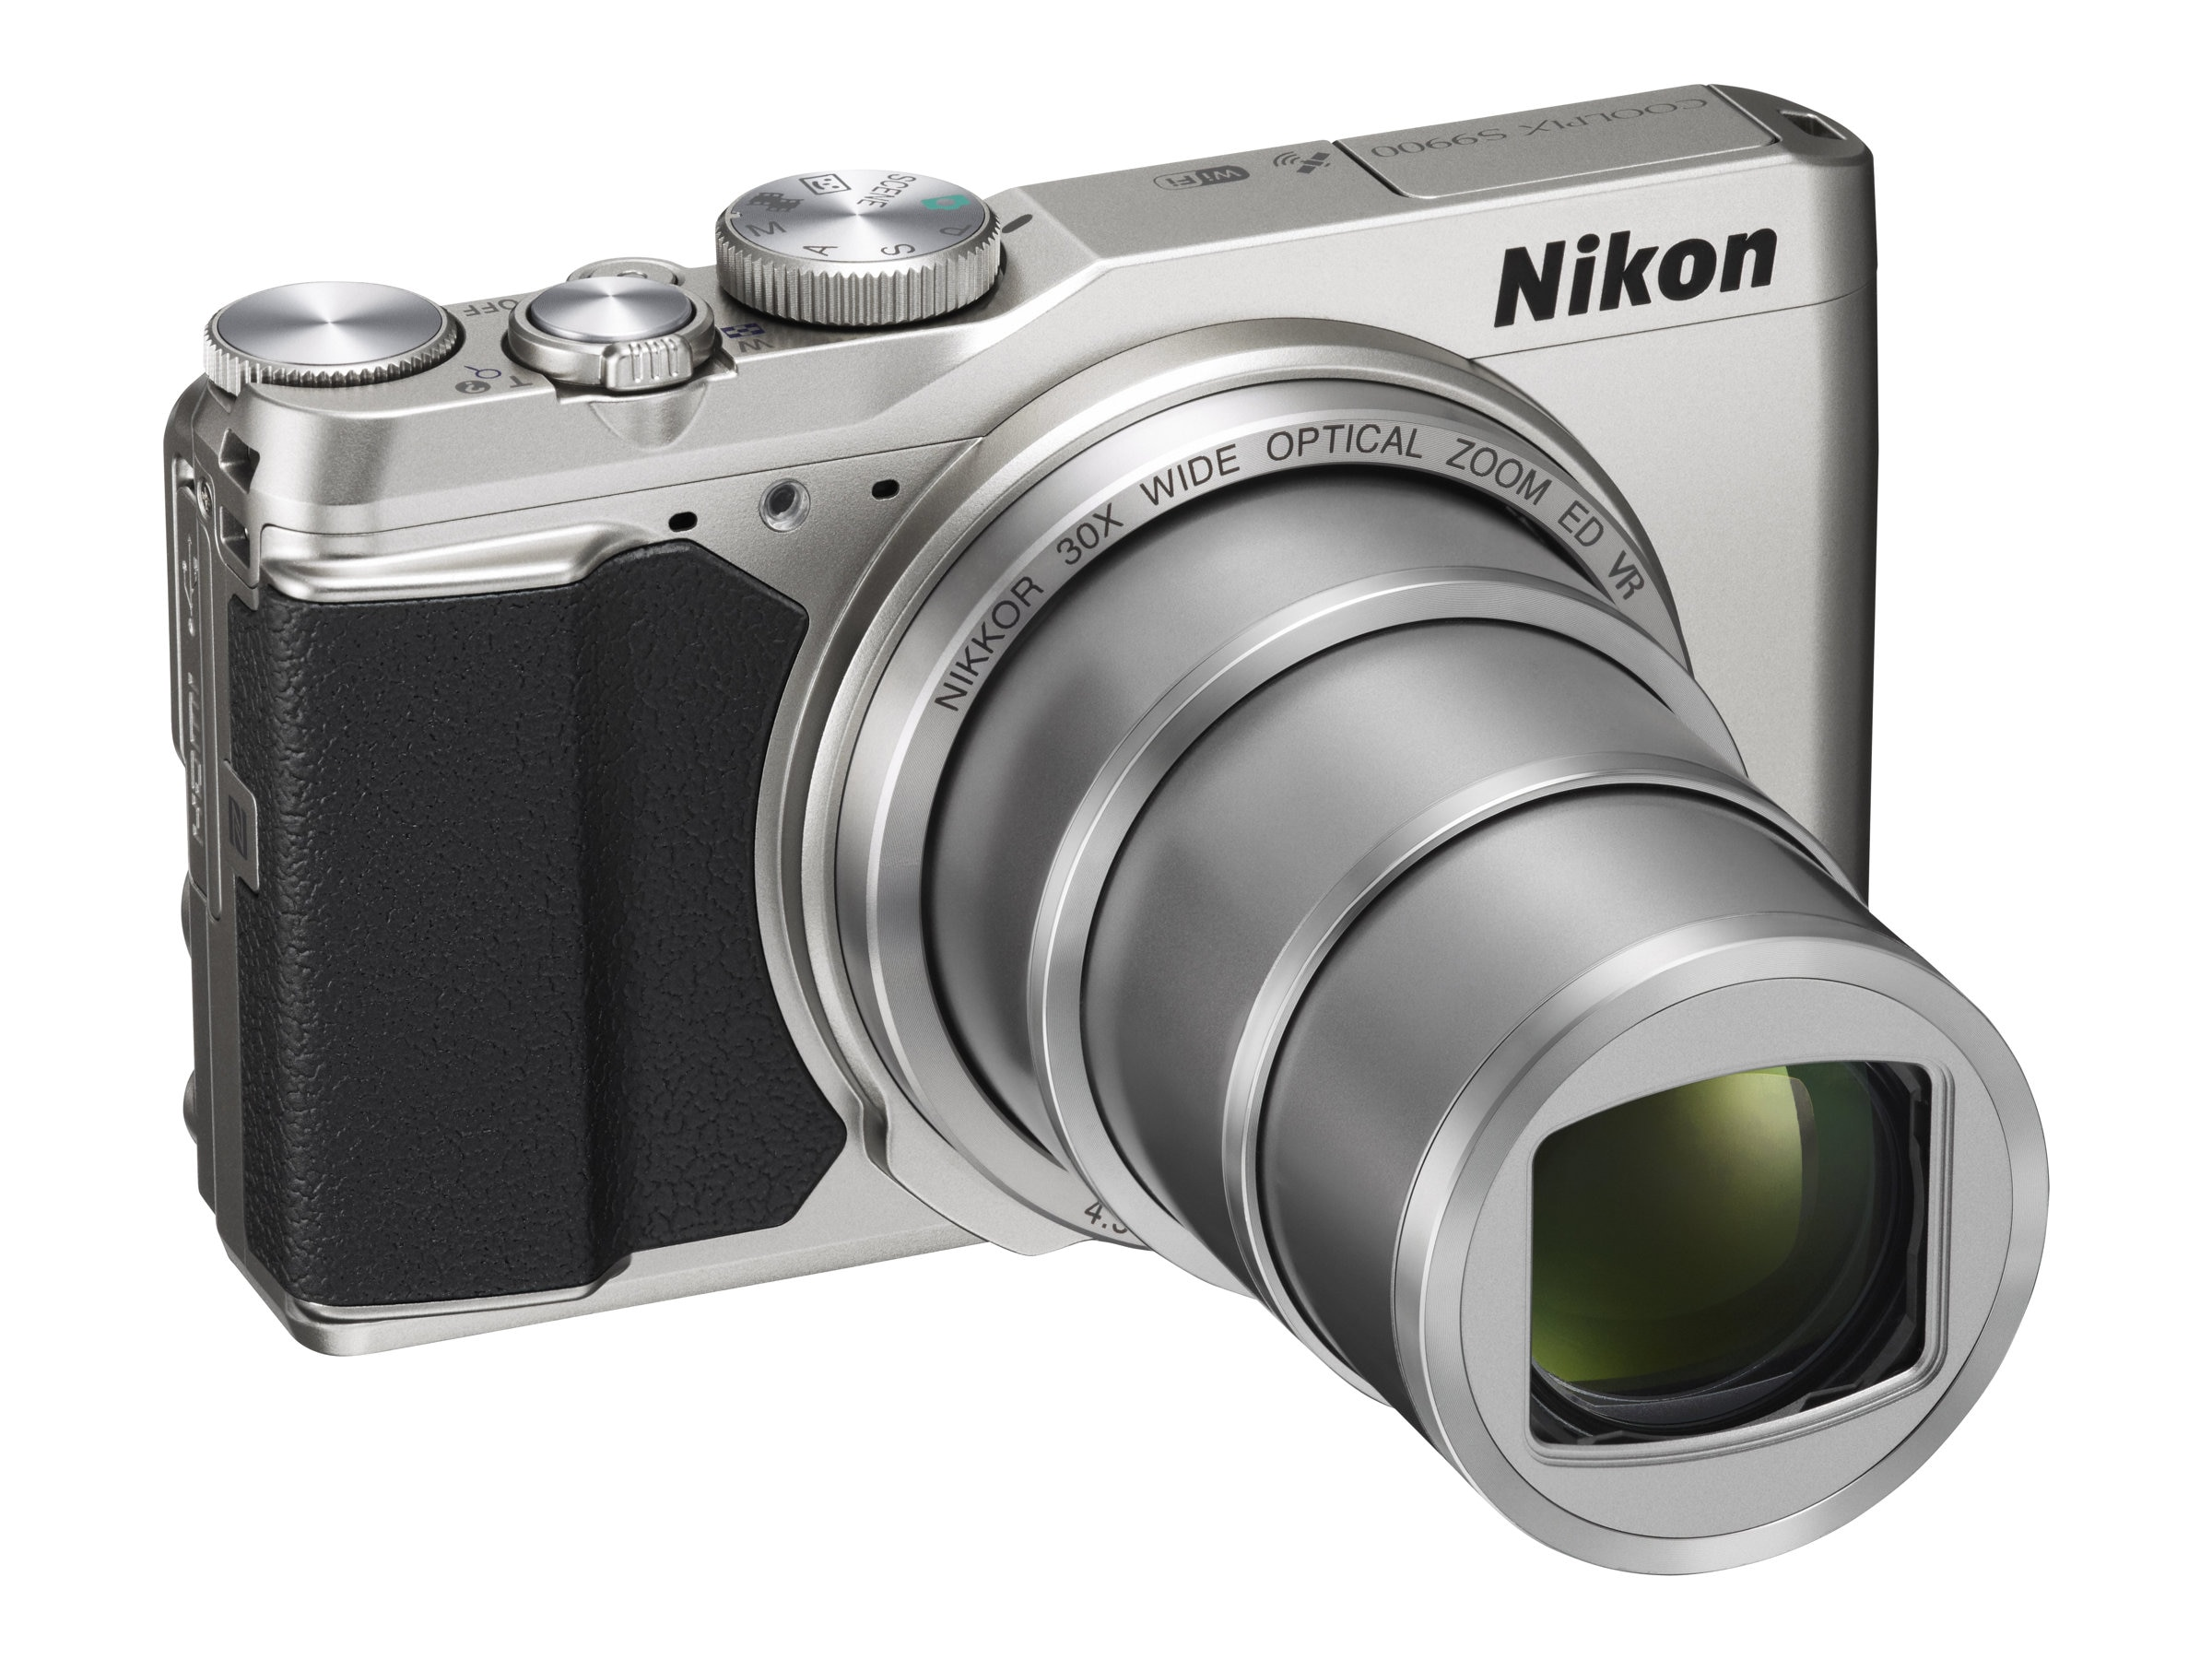 Nikon COOLPIX S9900 Digital Camera, Silver, 26498